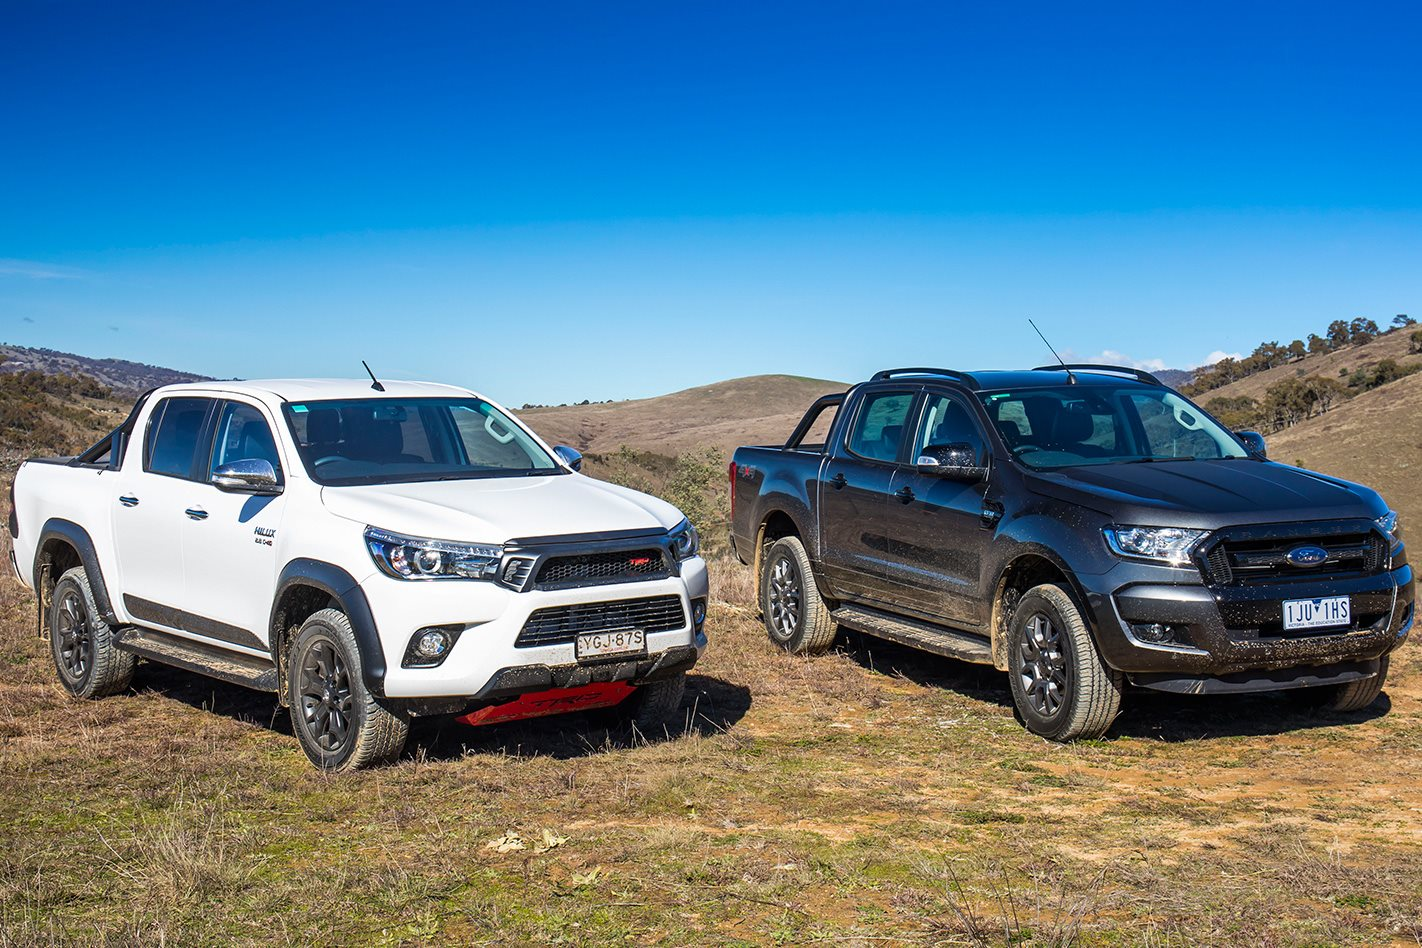 2017 Toyota Hilux TRD vs 2017 Ford Ranger FX4 comparison ...